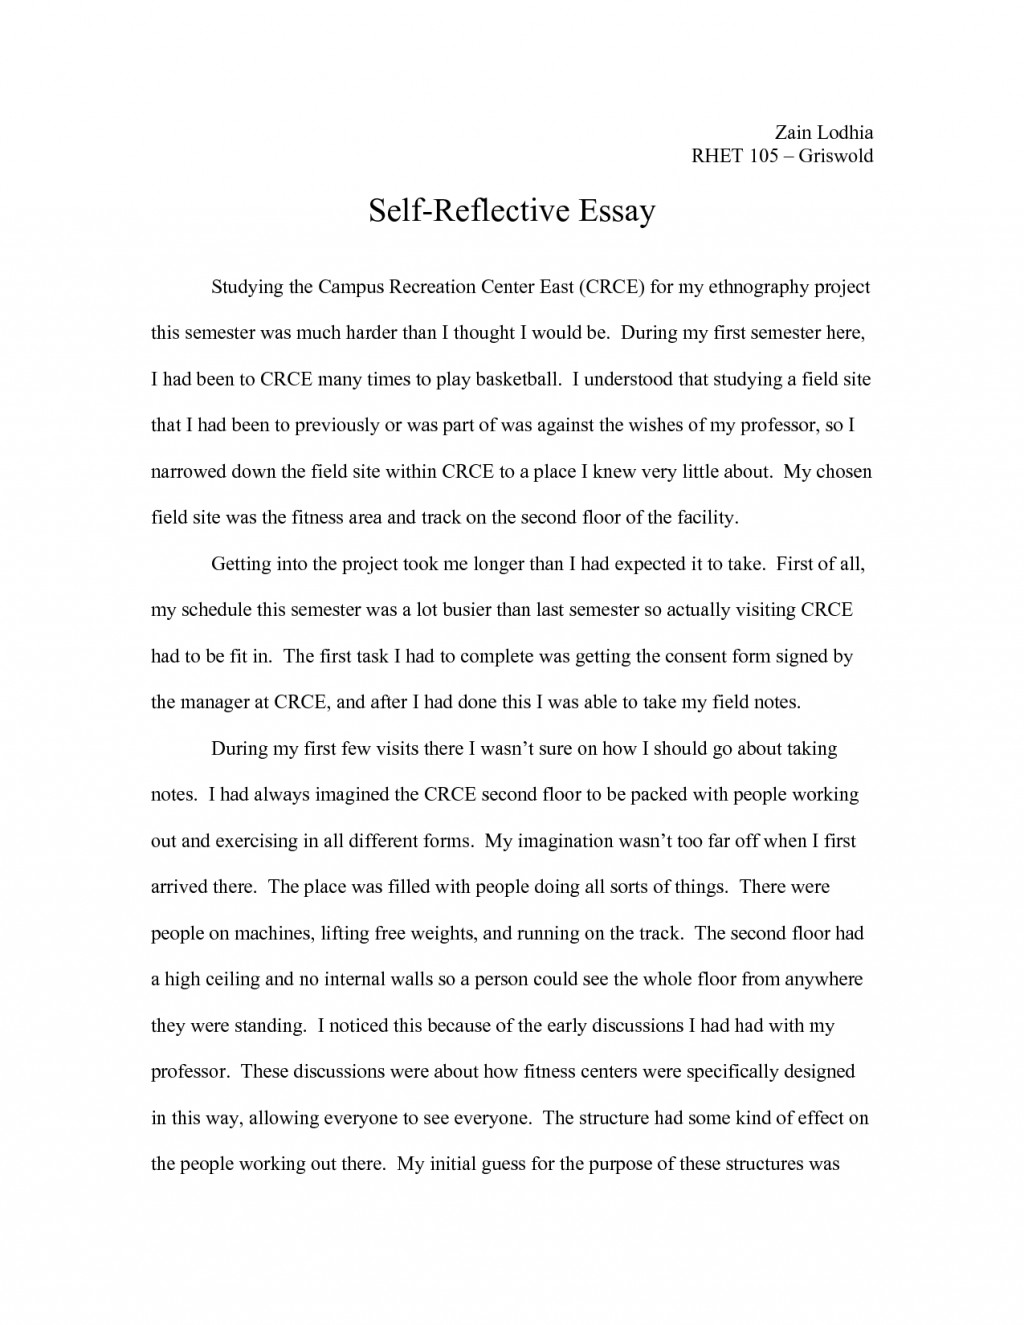 018 Qal0pwnf46 Free English Essays On Different Topics Essay Dreaded In Large